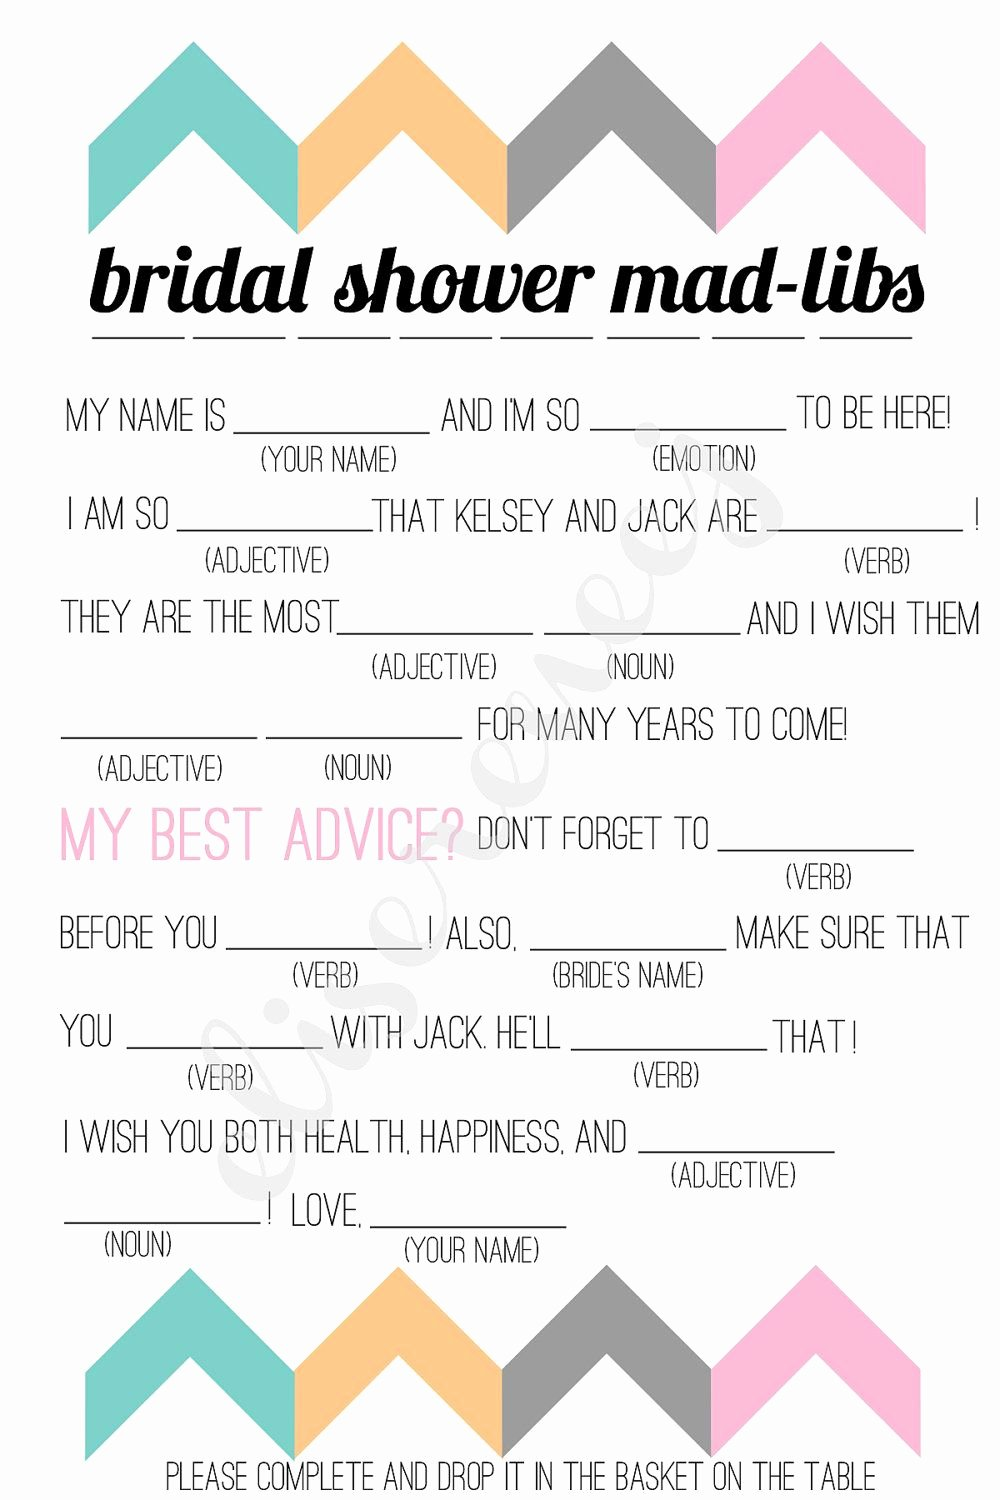 Wedding Shower Mad Lib Template Unique Free Bachelorette Party Mad Libs